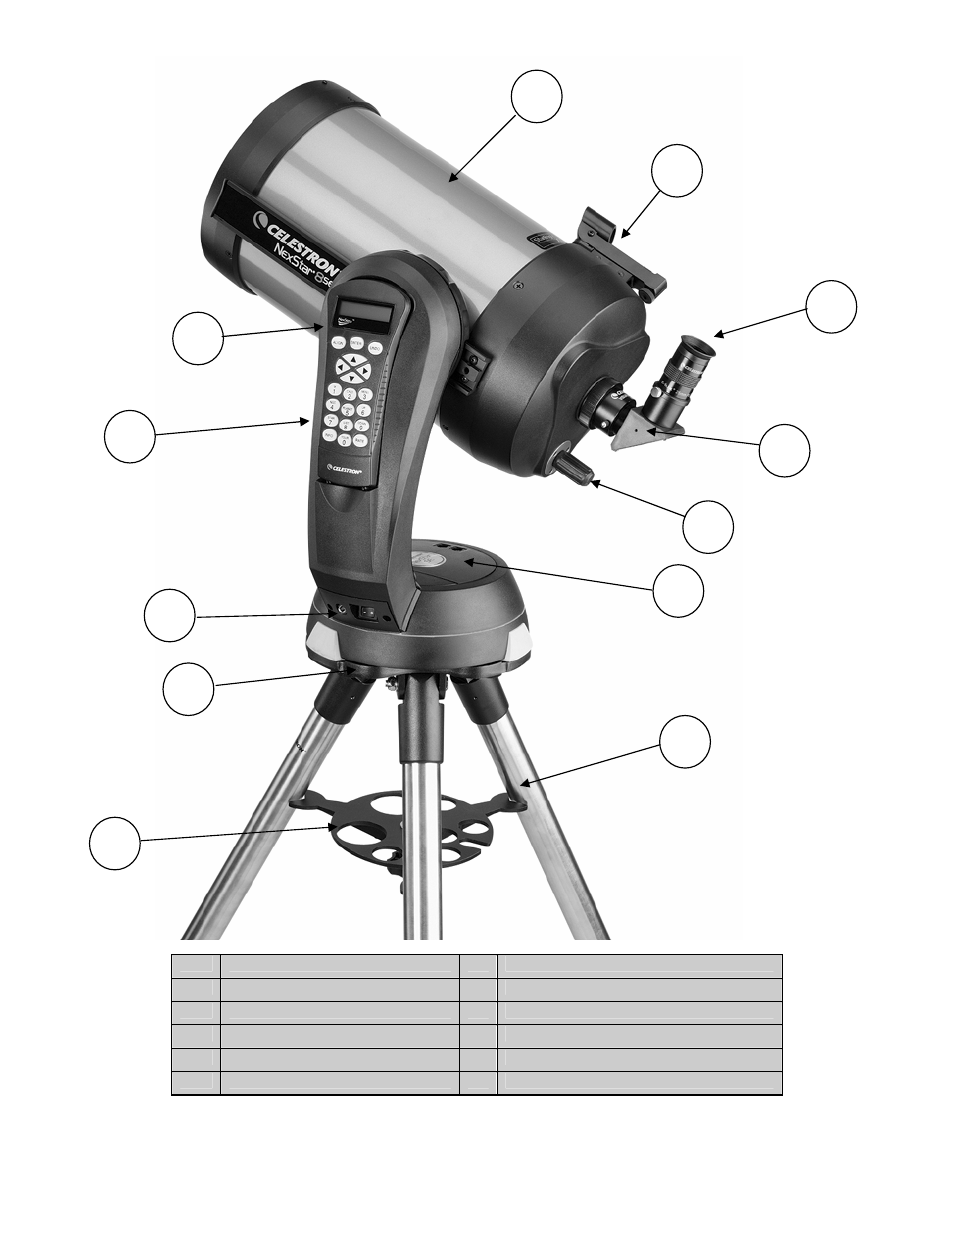 nexstar 8 se shown celestron nexstar 6 se user manual page 5 52 rh manualsdir com celestron nexstar evolution 8 manual celestron nexstar 8 se manuel